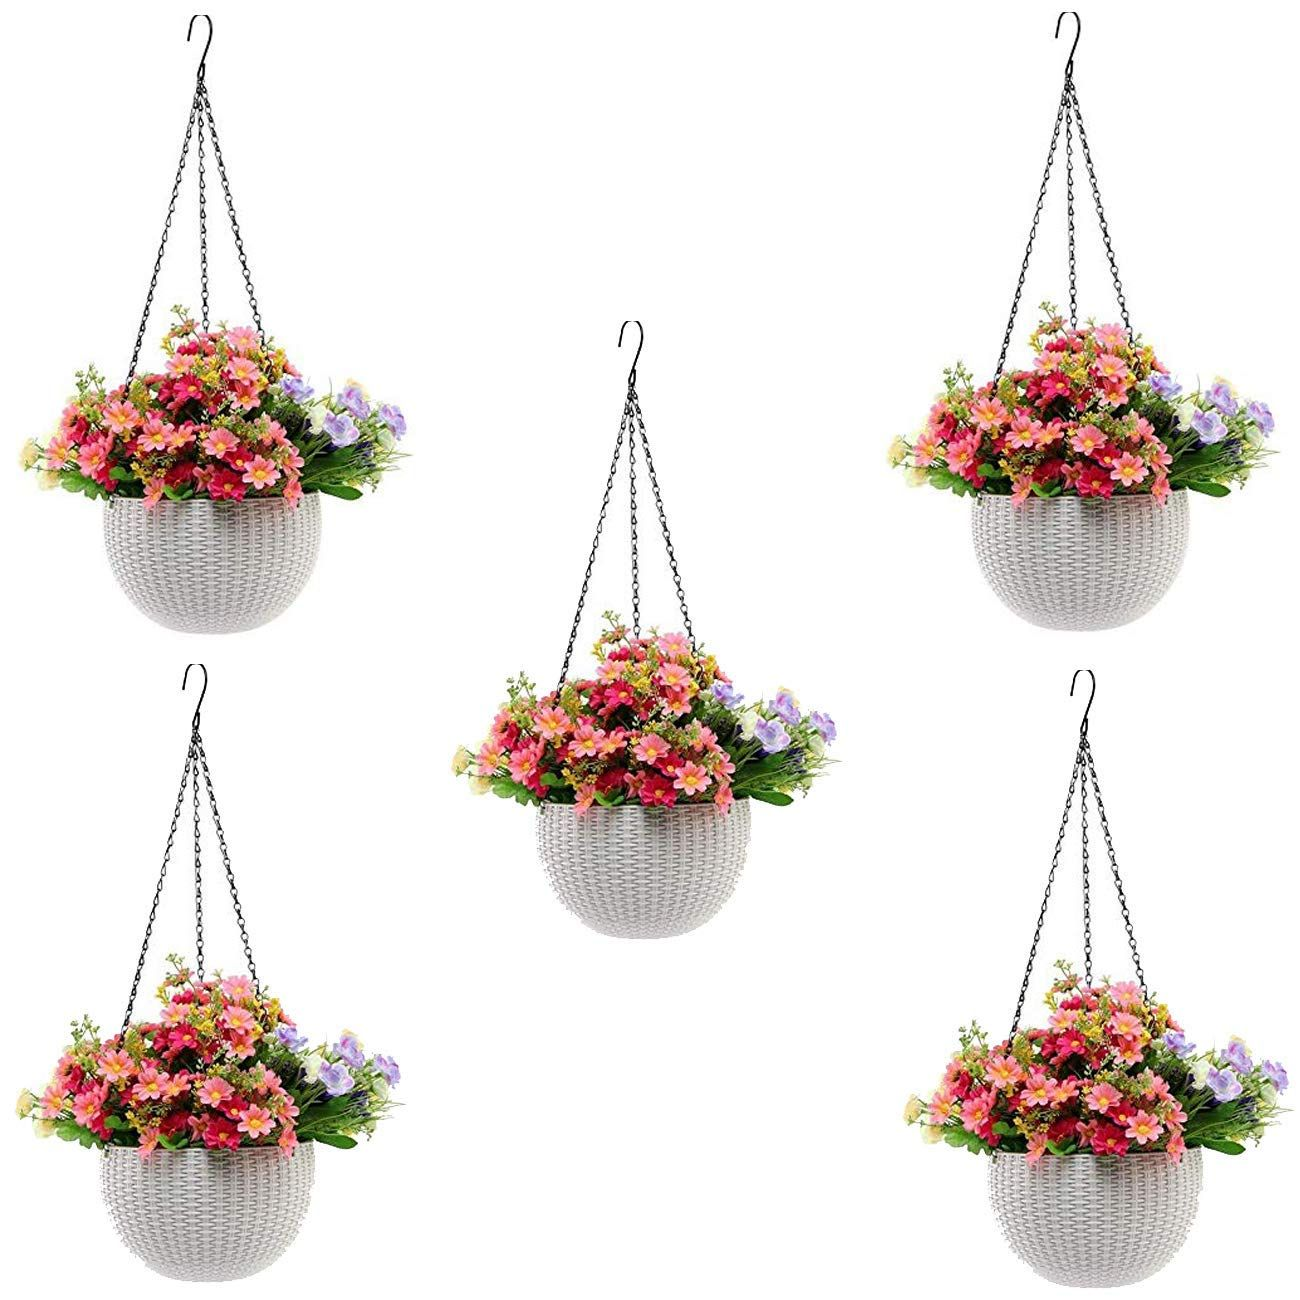 Perfect for your patio, garden, front porch, balcony or inside your home. Bring a green living to your home #gardenideas #gardendecorationideas #decorationgarden #gardenprojects #herbpots #plantsandgardening #gardenhouse #gardeningtips #gardeningstuff #gardeneasy #gardeningspaces #bestgardening #outdoorherbgarden #hangingyarddecor